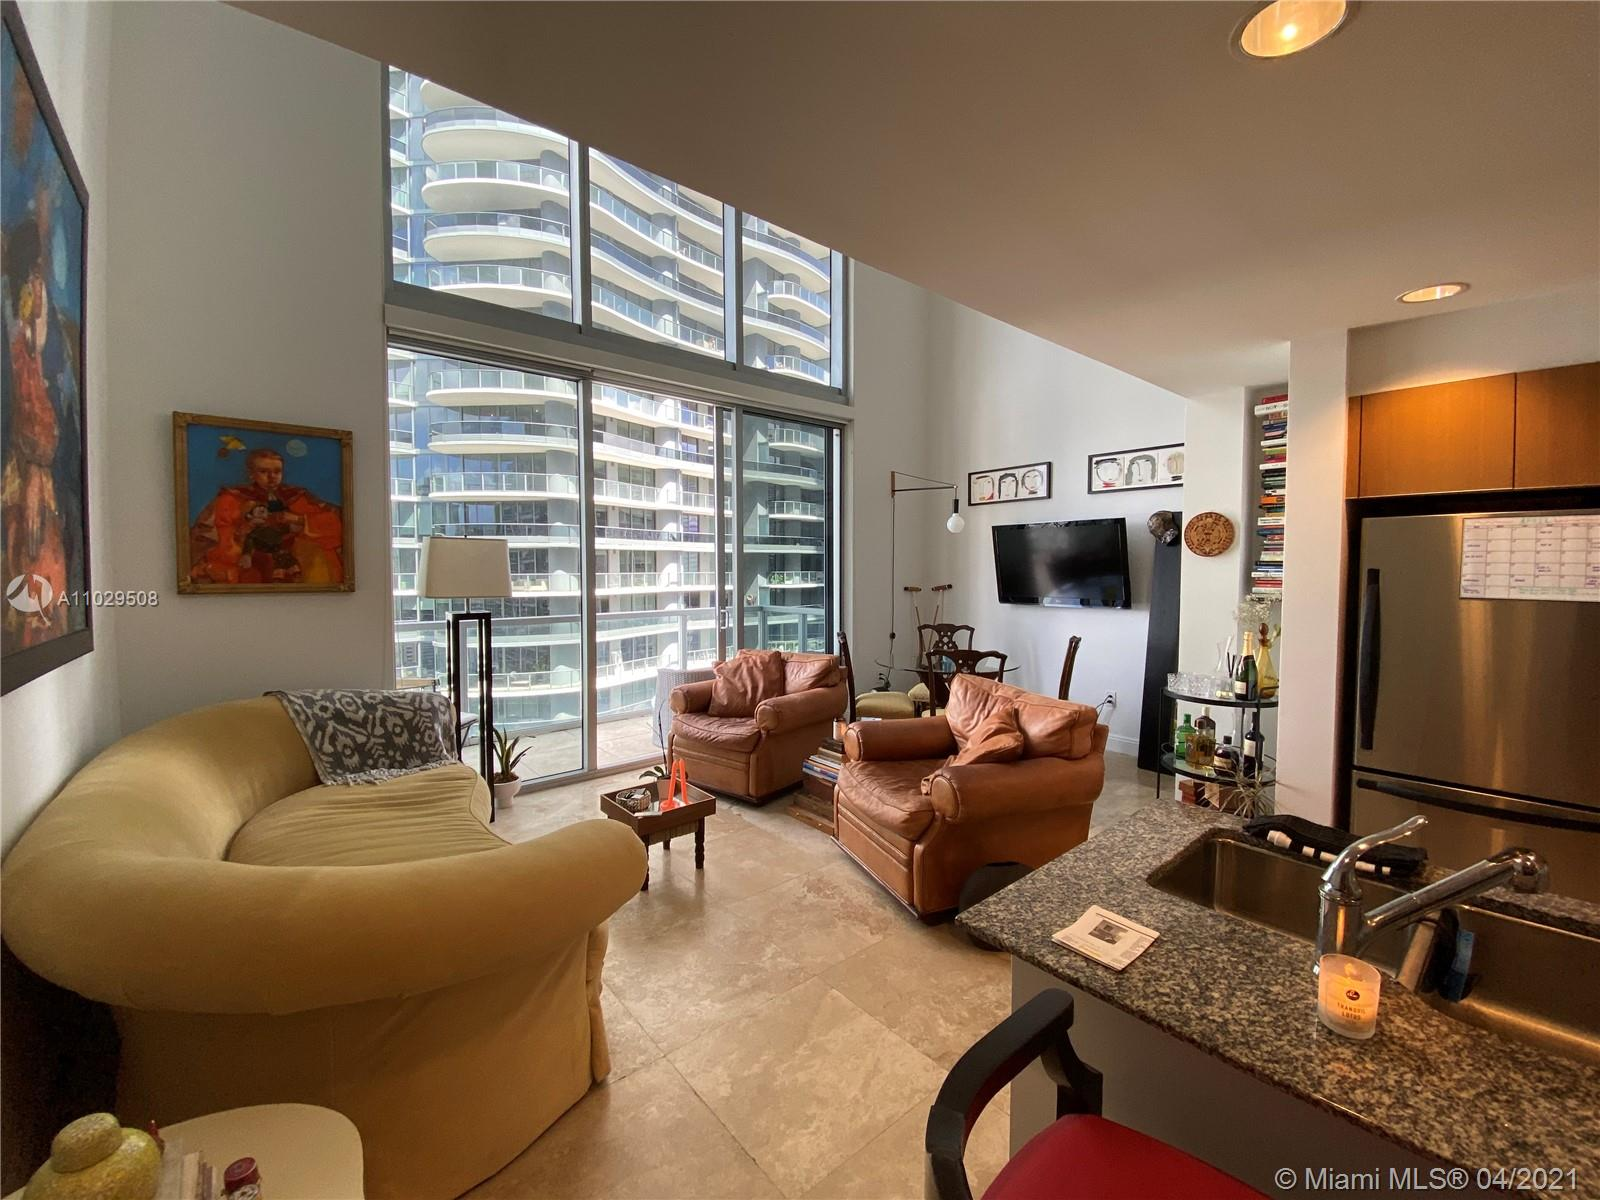 Gorgeous 2-story loft-style 1 bedroom and 1.5 bathrooms with 24x24 marble floors located in the heart of Brickell. Amenities include fitness center, spa, wine and cigar rooms, pool, business center 24 hrs security and valet parking. One parking space assigned. Walking distance to restaurants, shopping centers, supermarkets, bars and nightclubs. Rented to great tenants until June 2021.